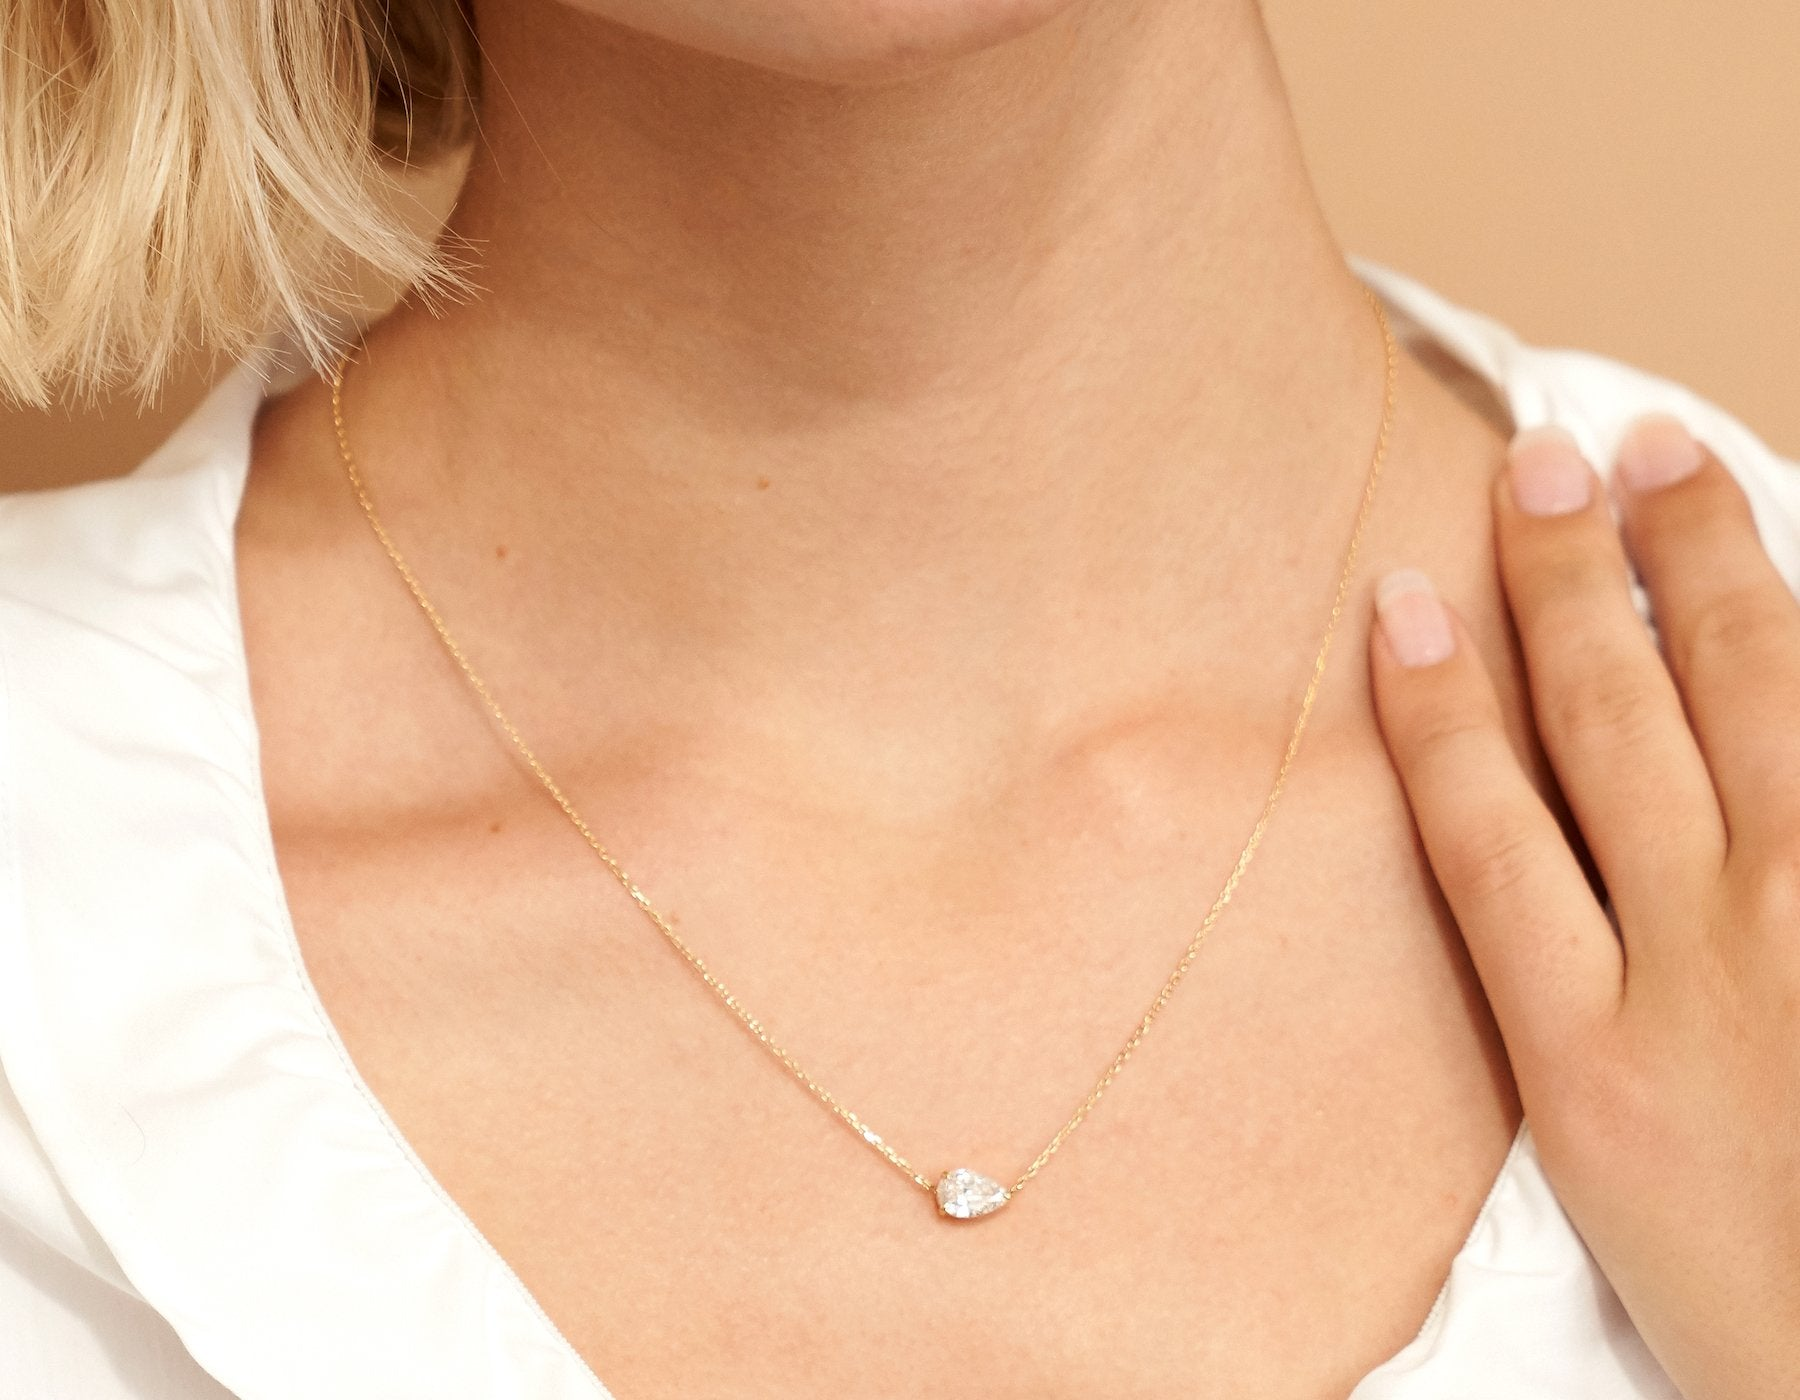 Model wearing Vrai 14K solid gold solitaire pear diamond necklace 1ct minimalist delicate, 14K White Gold